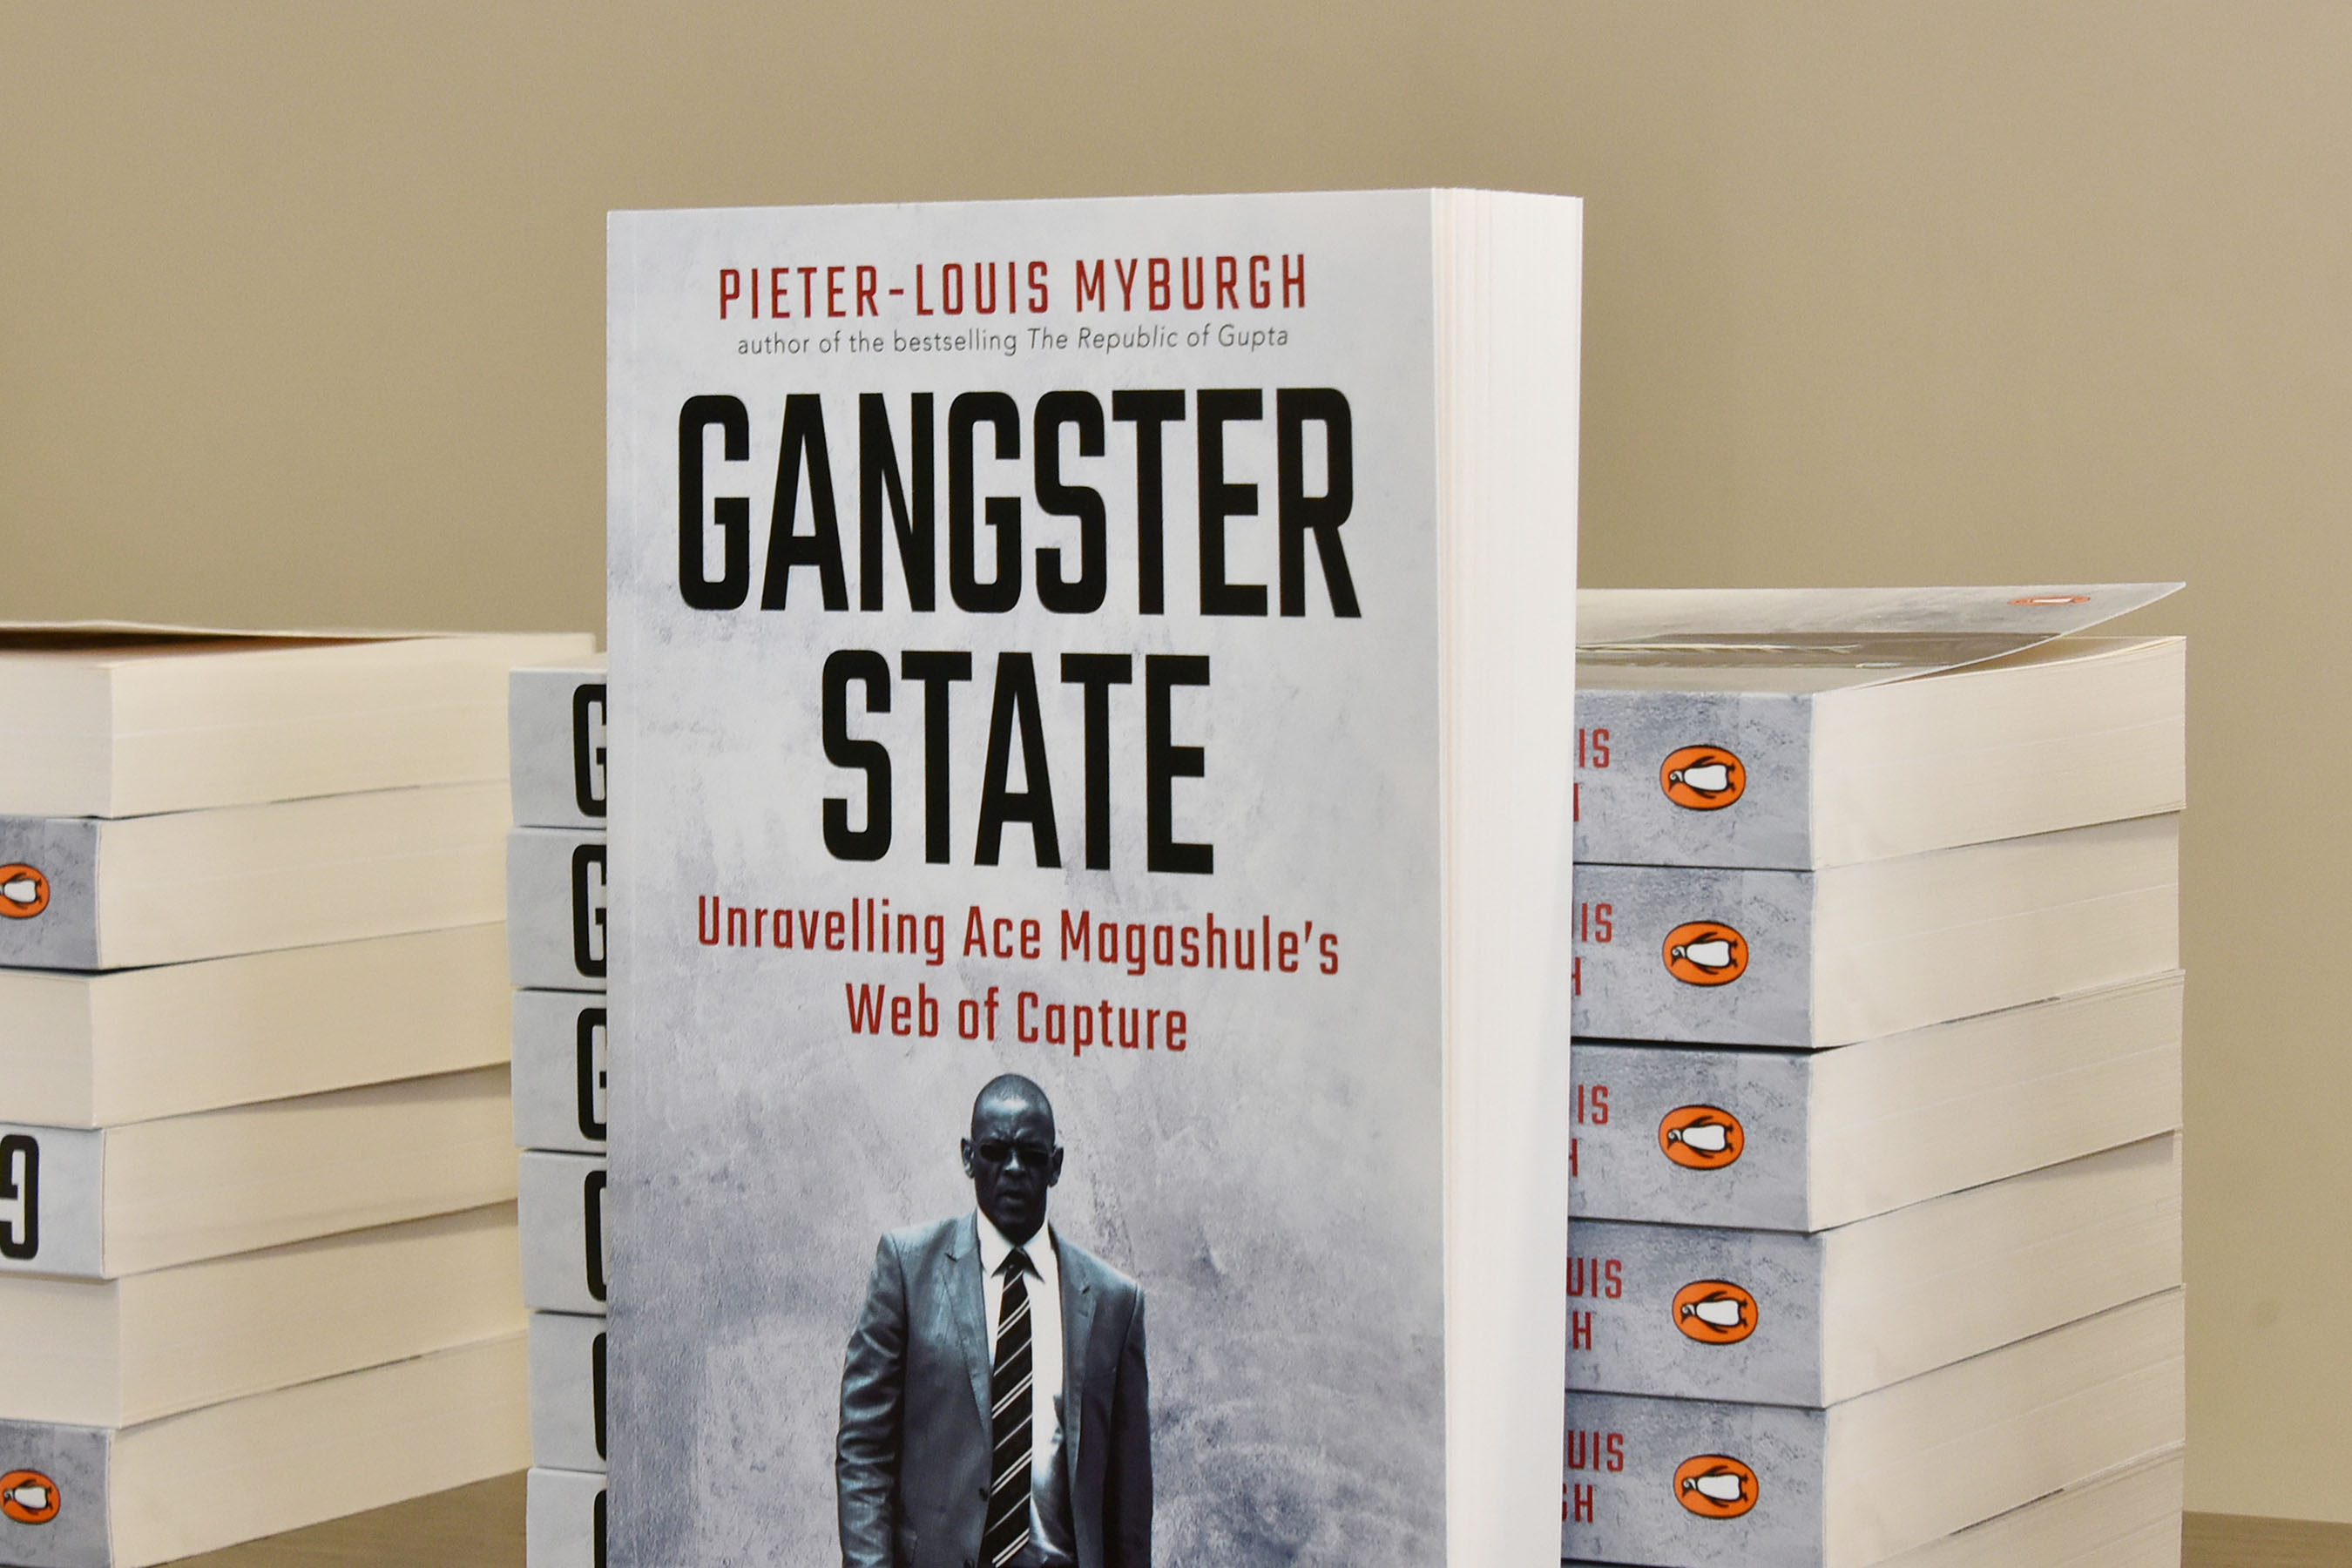 Gangster State: Unraveling Ace Magashule